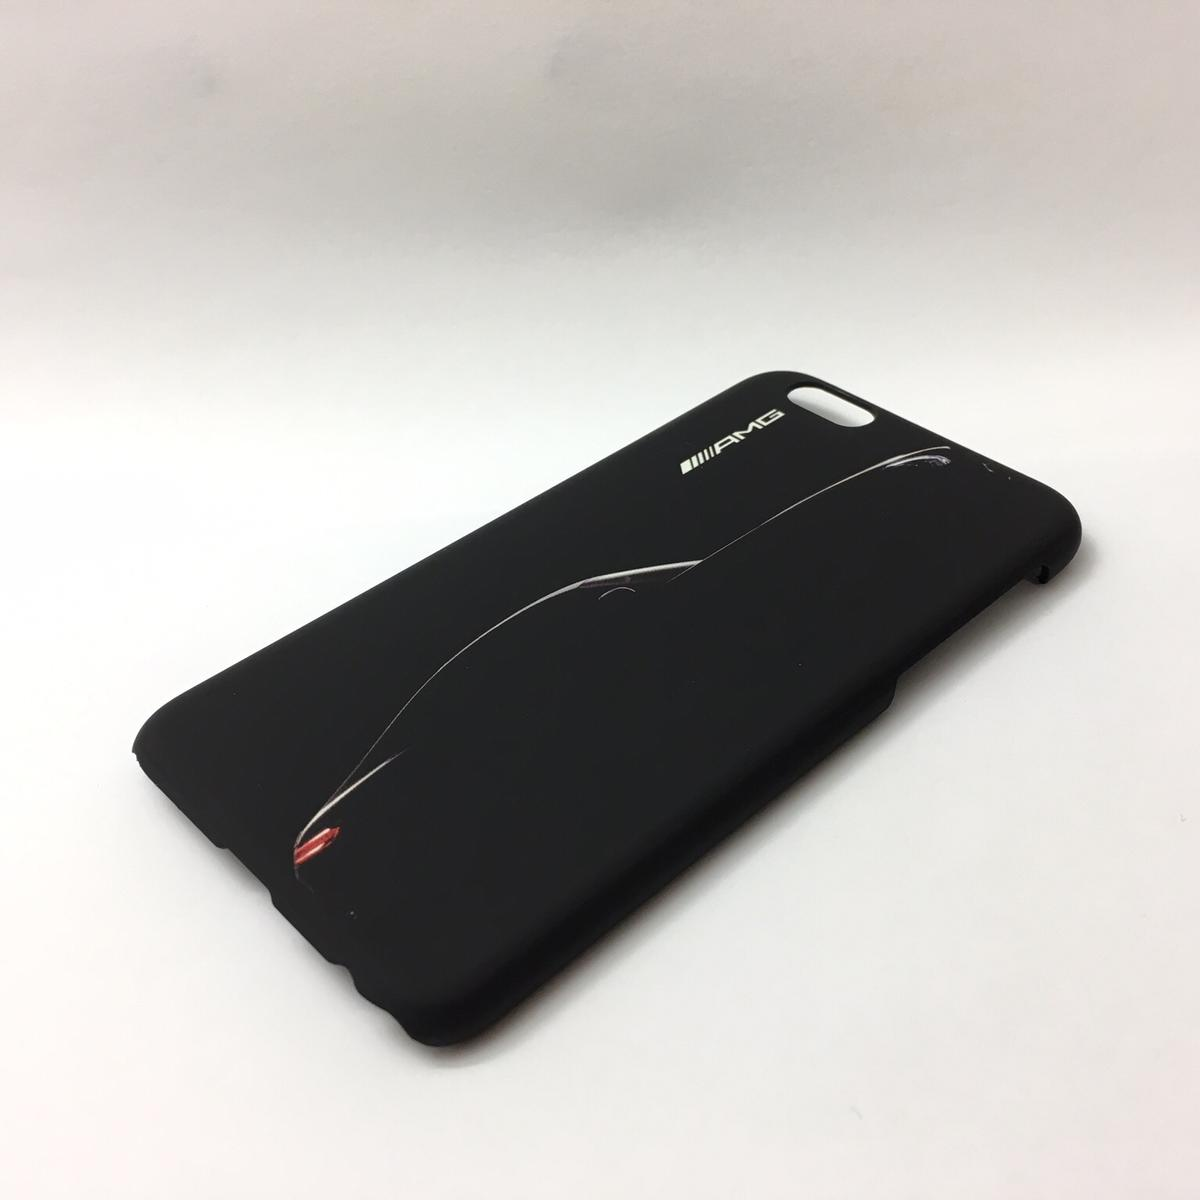 Mercedes Benz Hülle Für Iphone 6 6s Amg In 71364 Winnenden For 15 00 For Sale Shpock